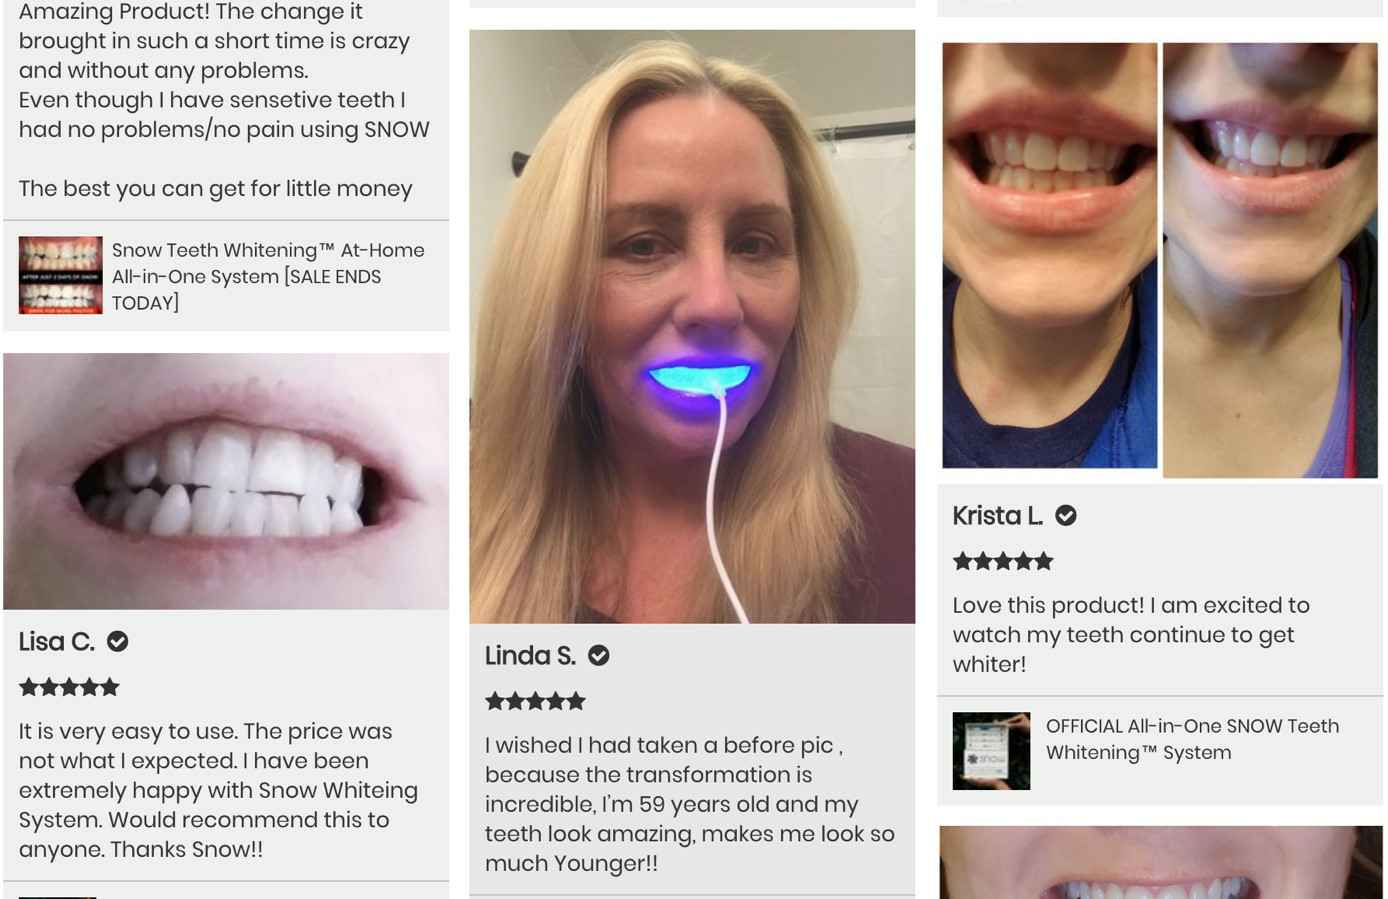 Amazon Snow Teeth Whitening Deals  2020